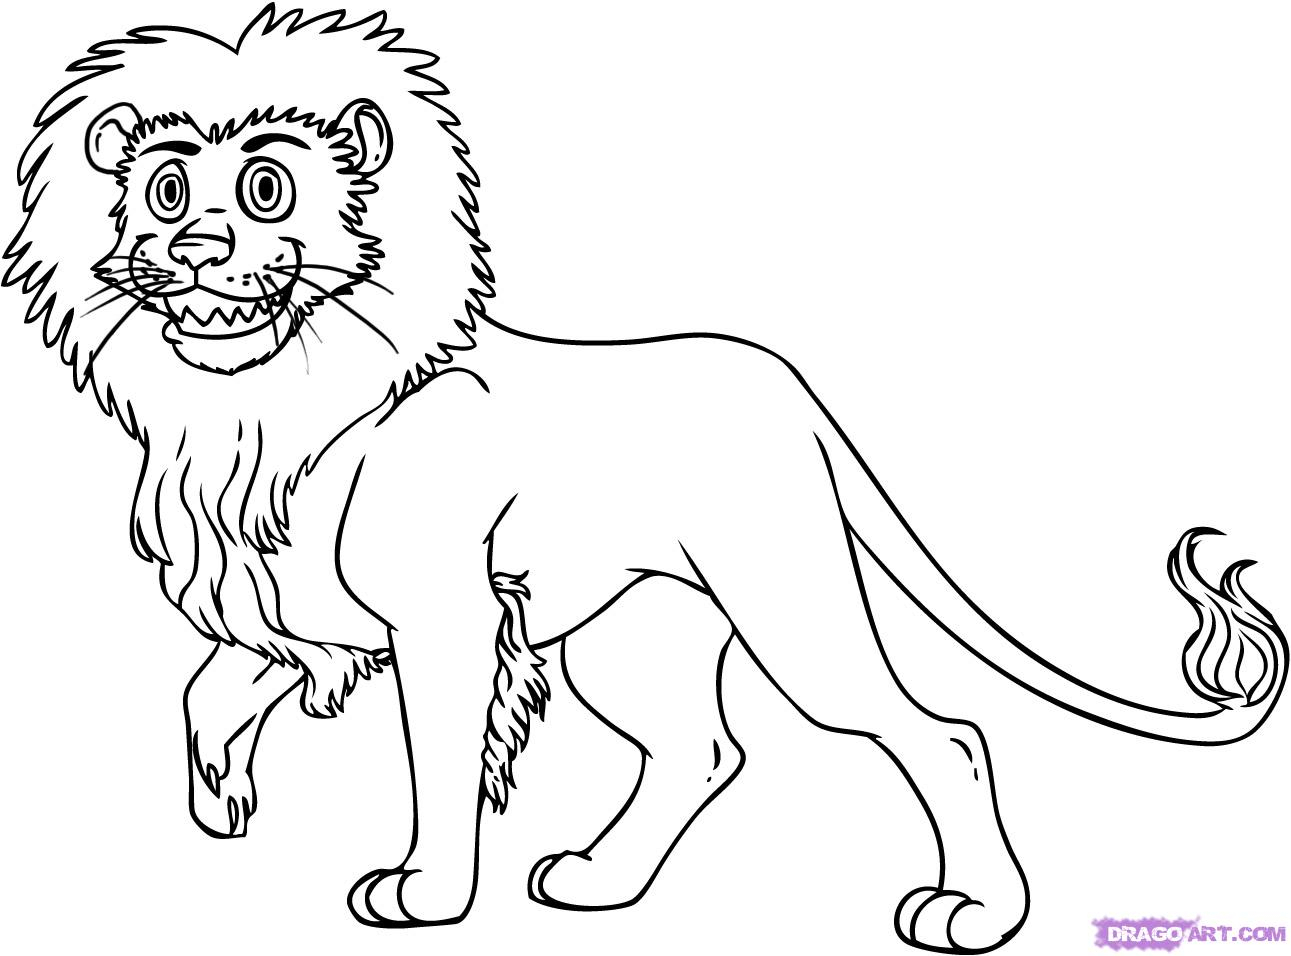 1291x956 Easy Cartoon Lion Drawings How To Draw A Cartoon Lion, Step By